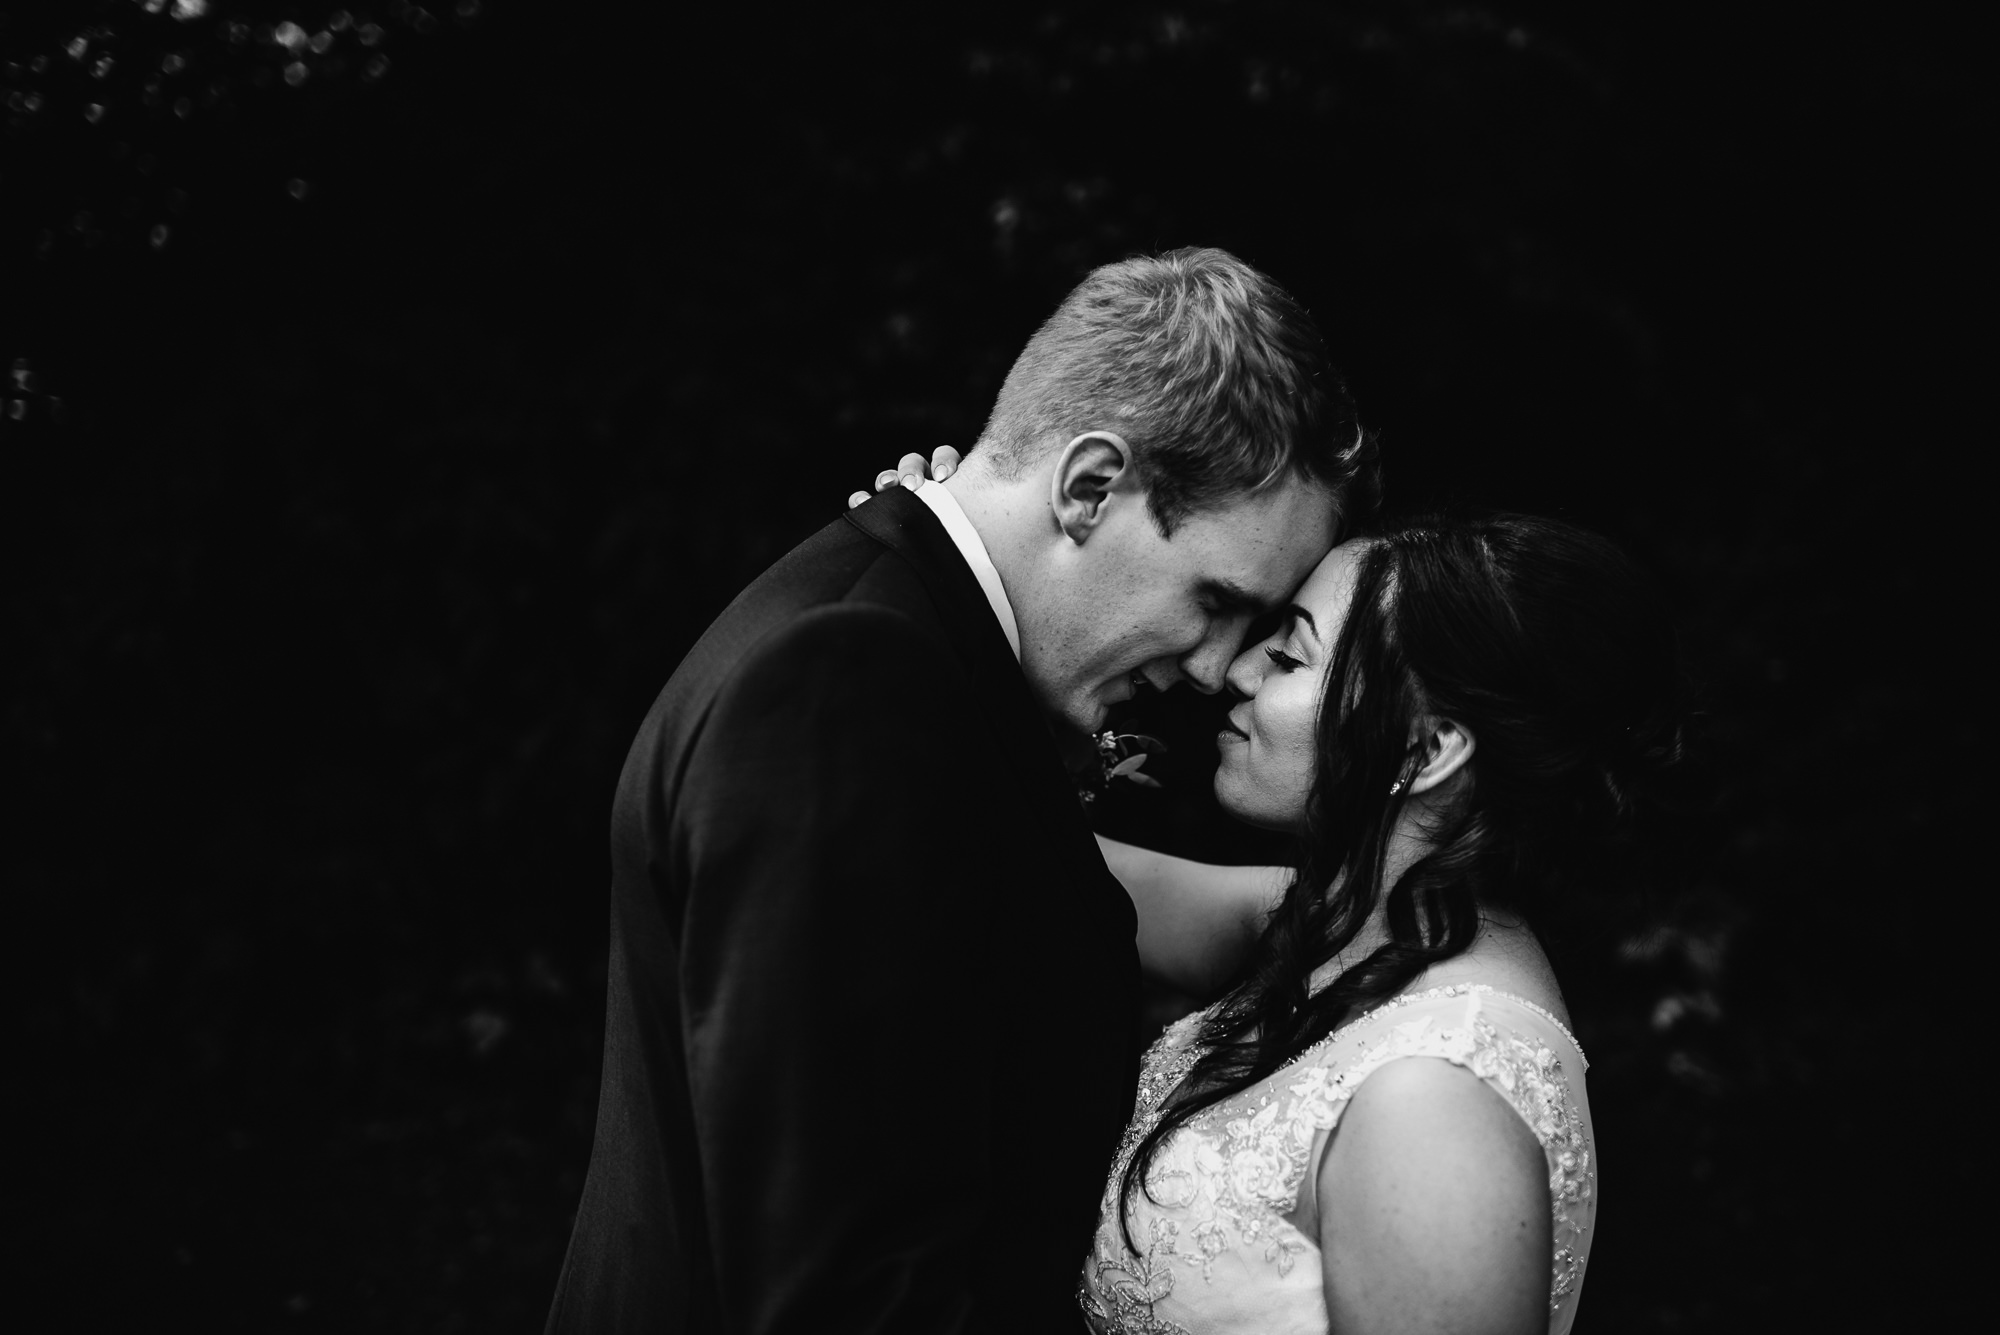 Statham lodge natural and candid wedding photography north west bested full time edding photographer adam joe roberts photography (84 of 96).jpg